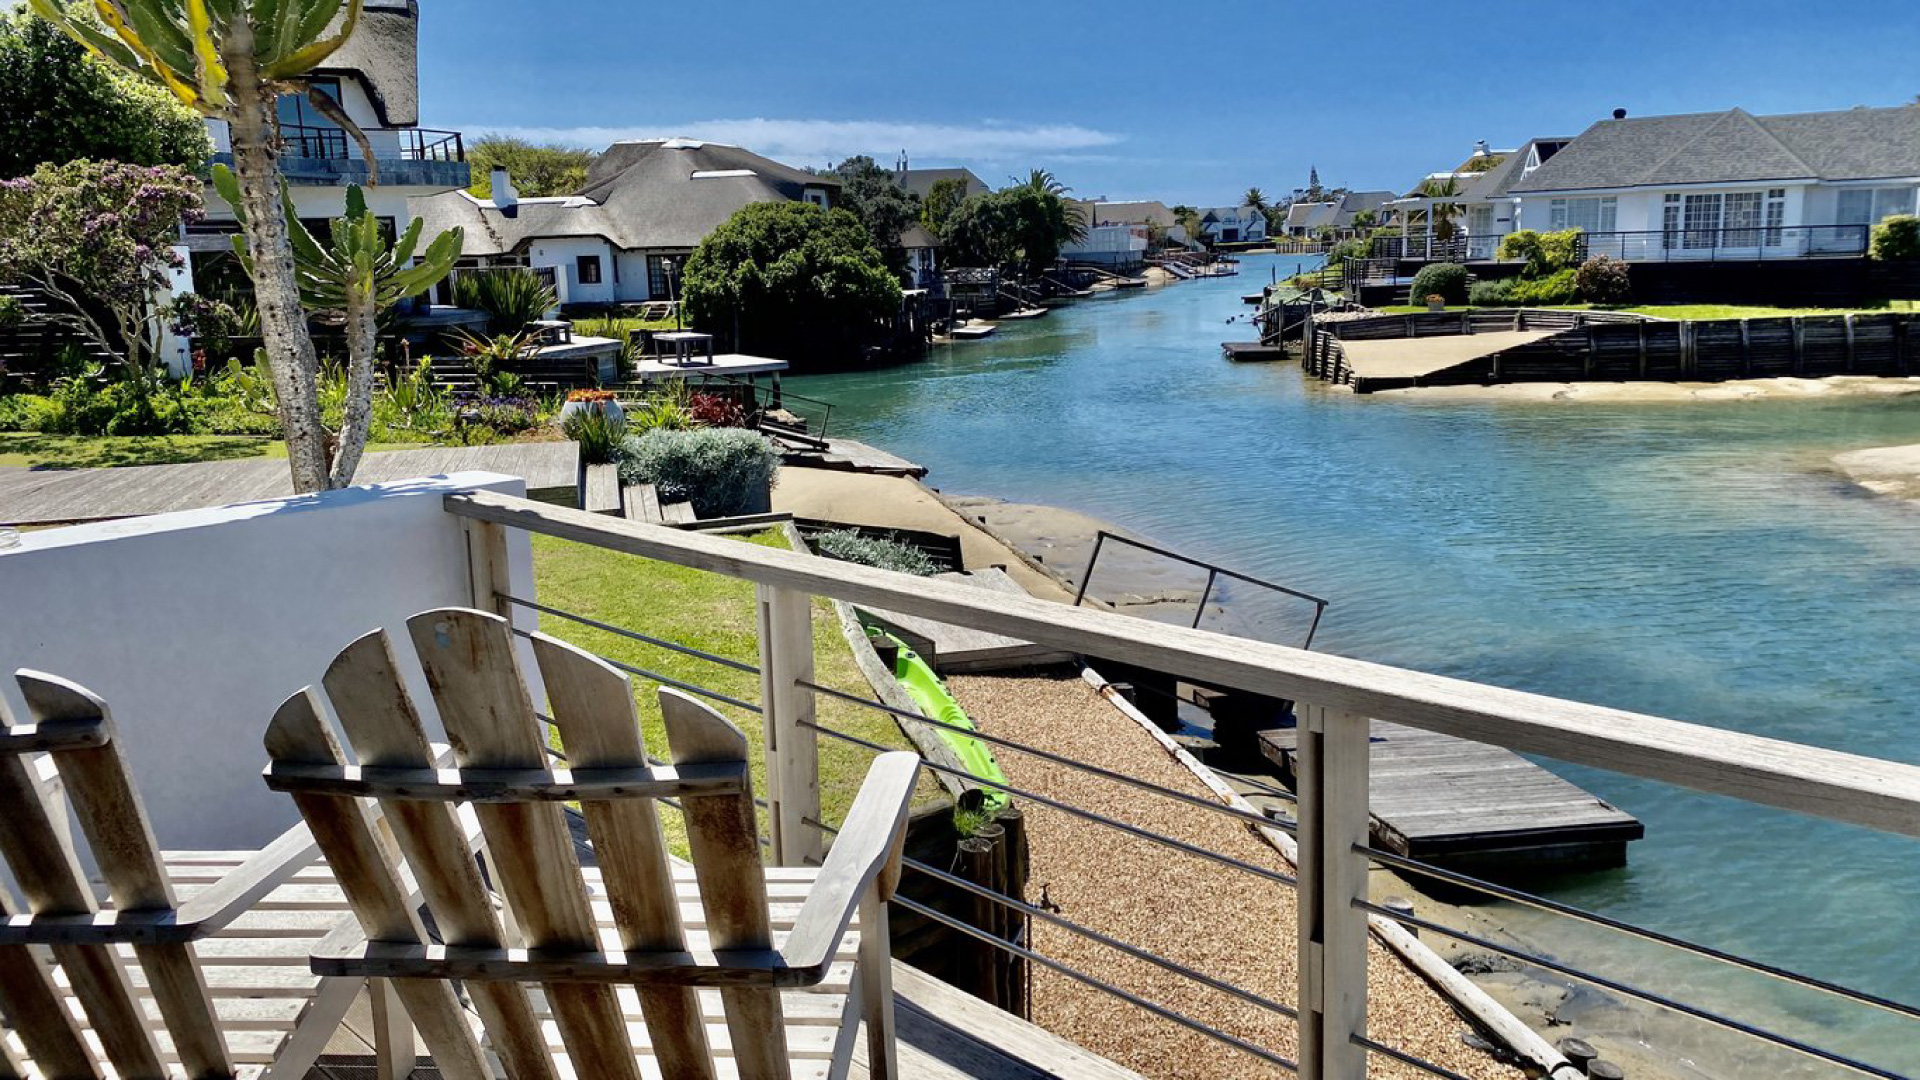 st-francis-bay-canals-eastern-cape